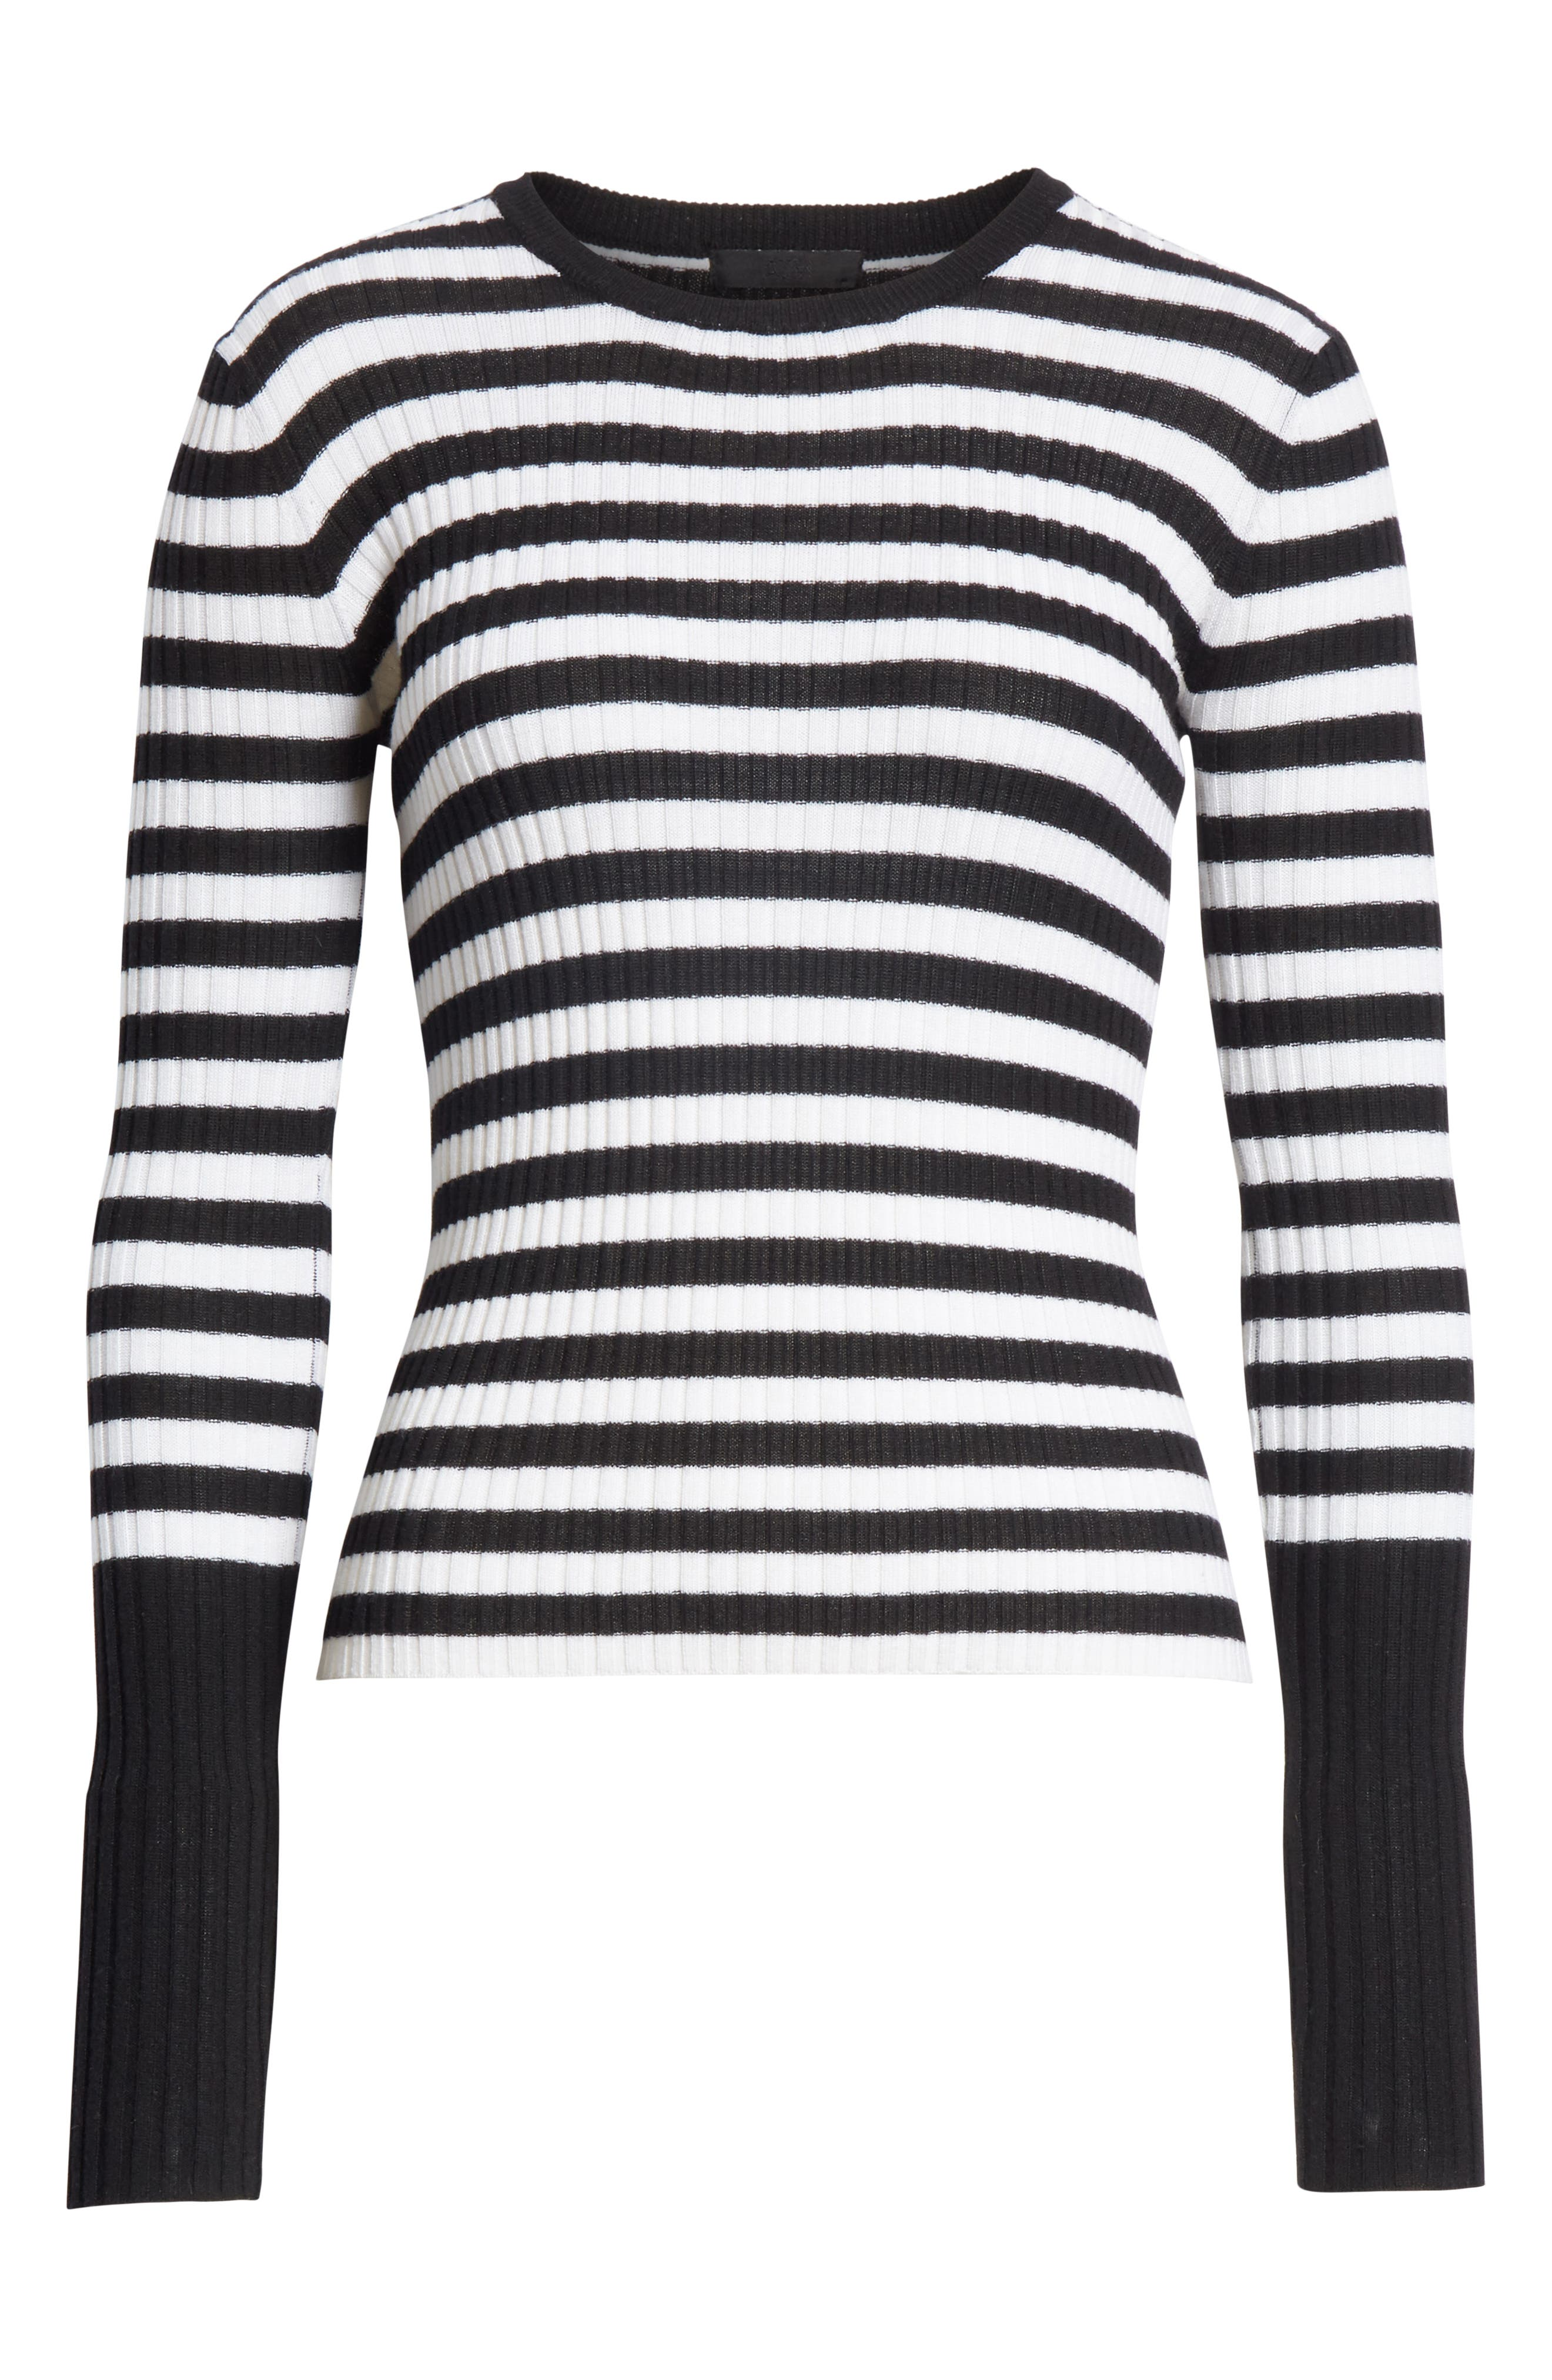 Stripe Rib Merino Wool Sweater,                             Alternate thumbnail 6, color,                             BLACK/ WHITE STRIPE